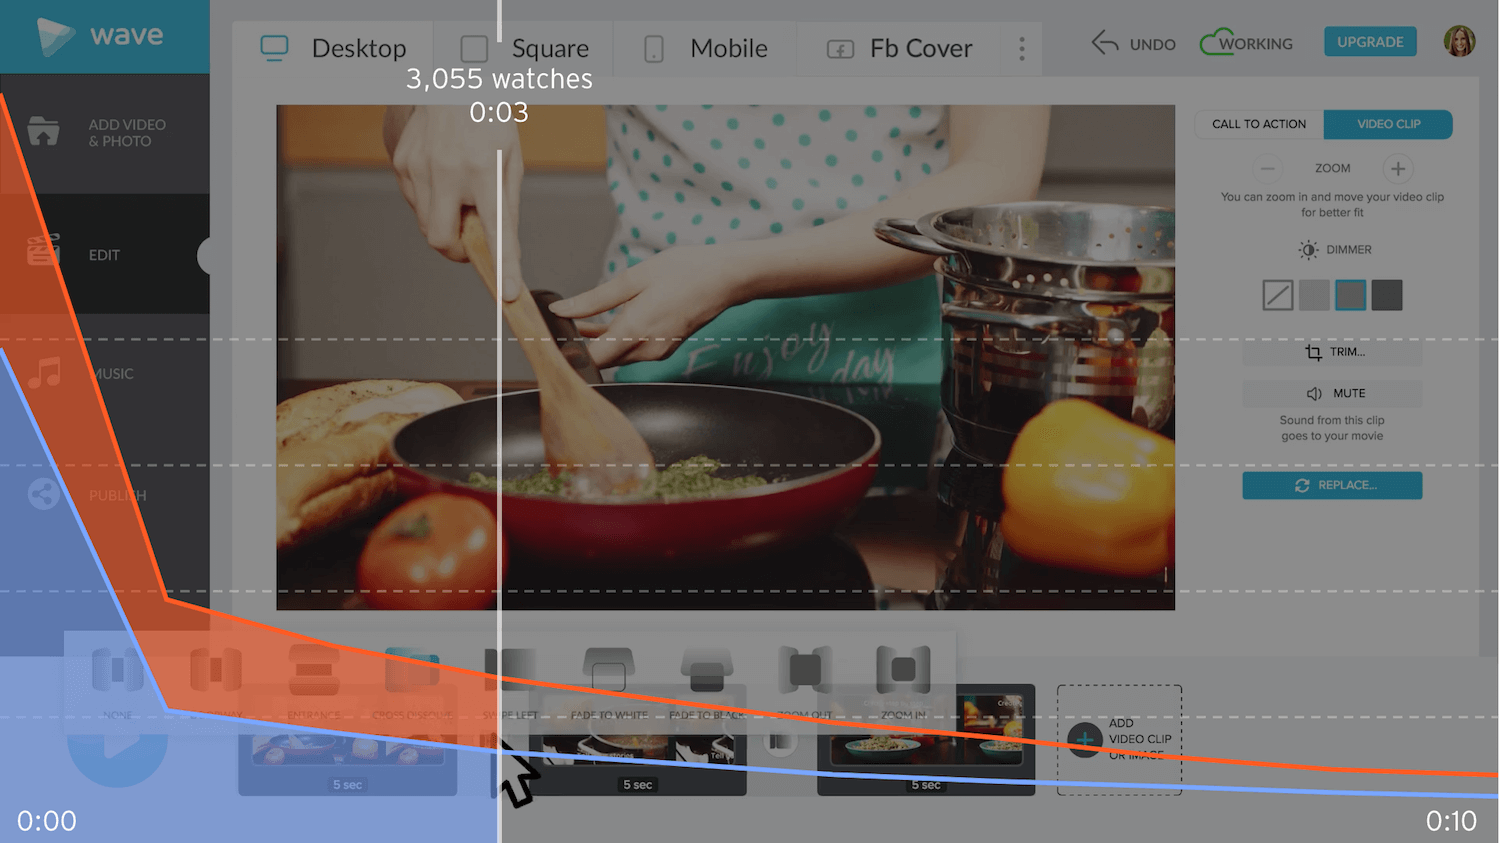 Wave video Integration with Wistia | Wave video